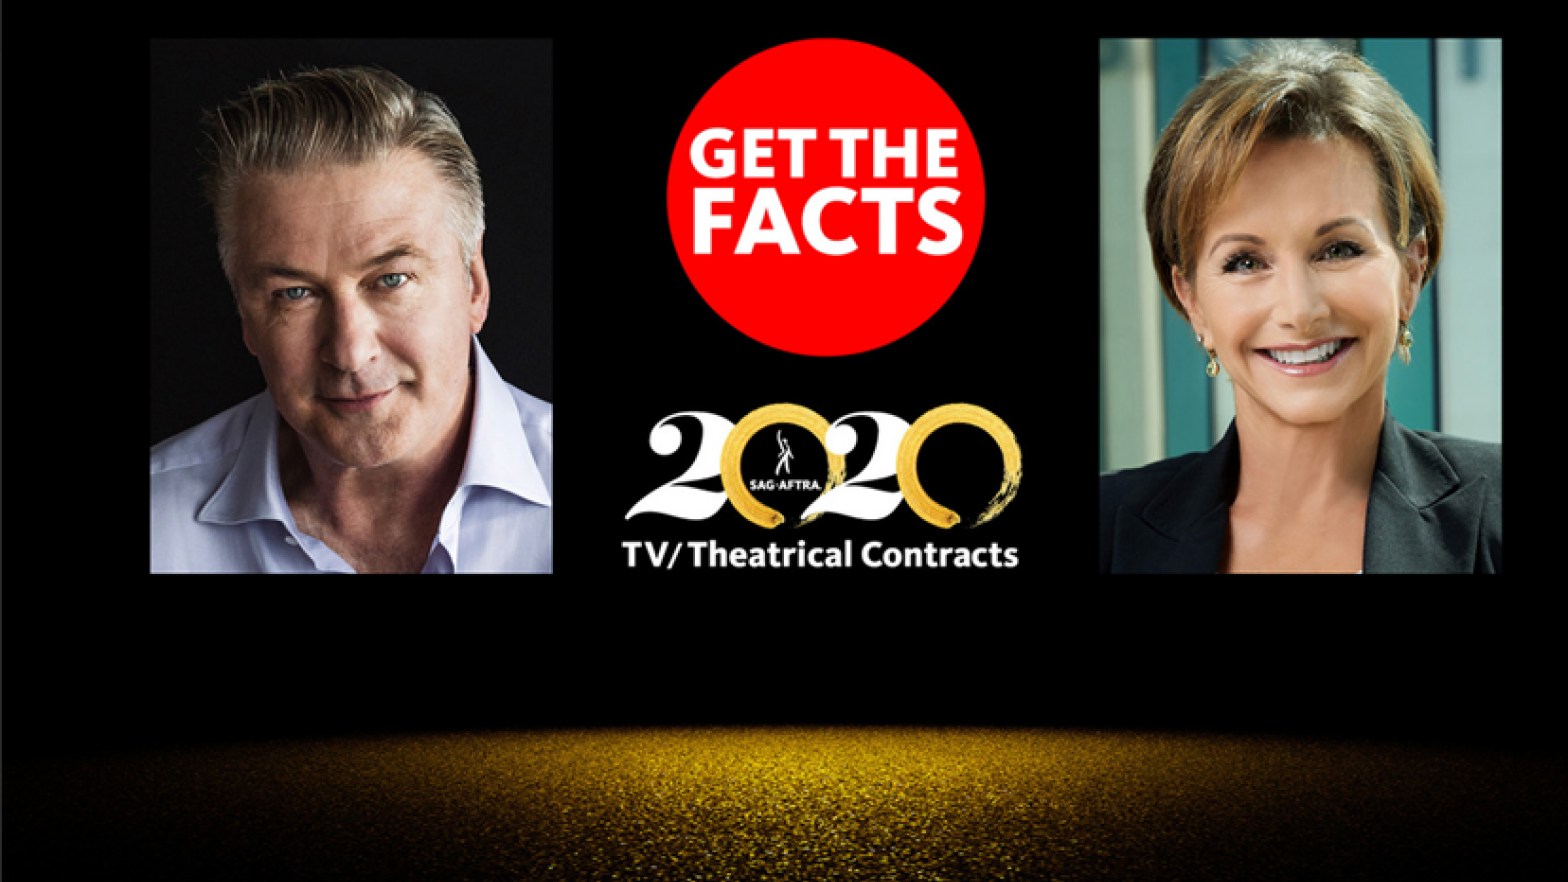 Alec Baldwin and Gabrielle Carteris discuss the 2020 TV/Theatrical Contracts